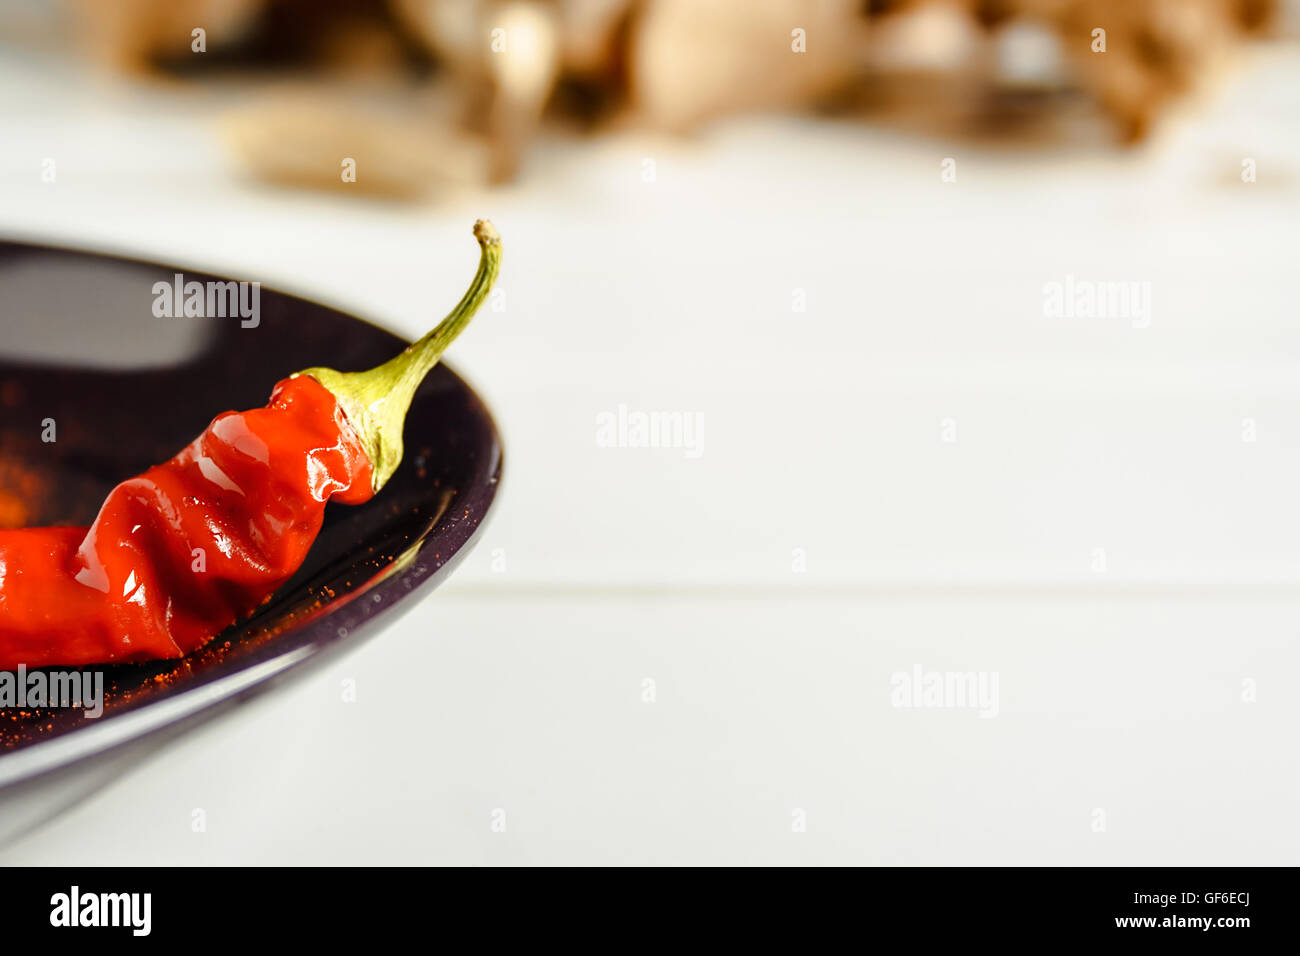 Closeup red pepper on brown dish over white wood. Horizontal image. Stock Photo